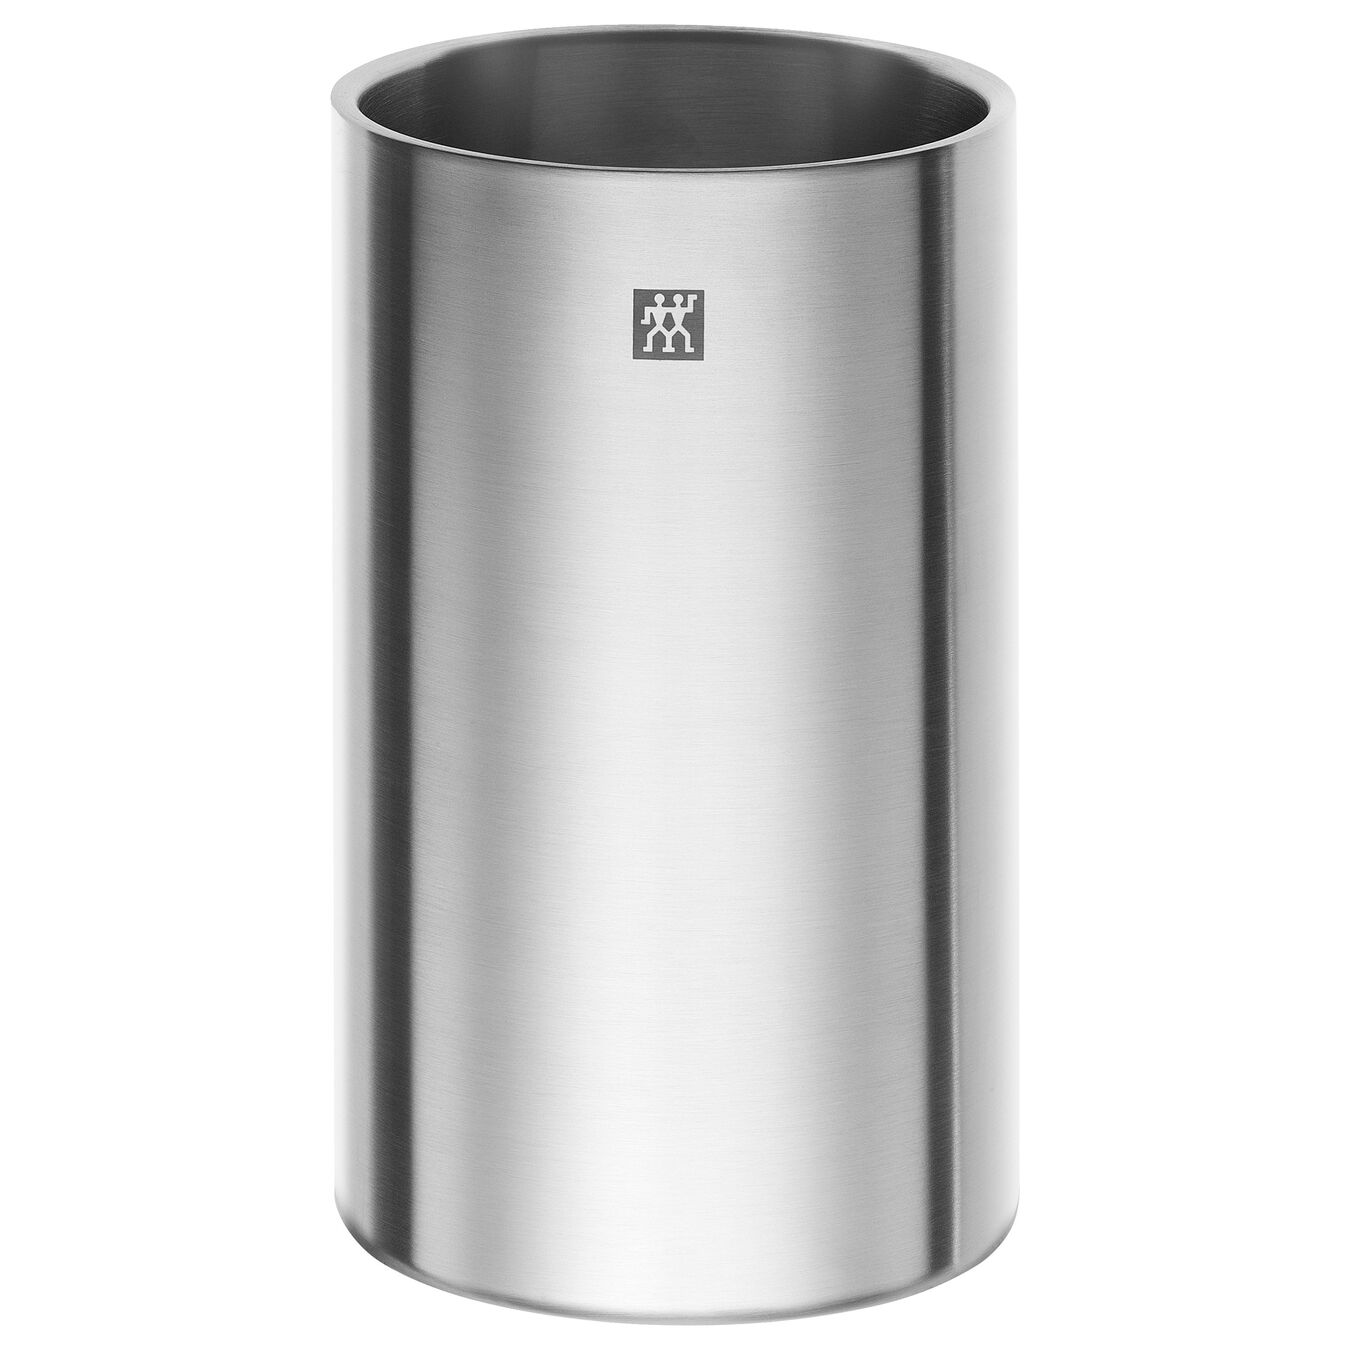 Stainless Steel Wine Bottle Cooler,,large 1